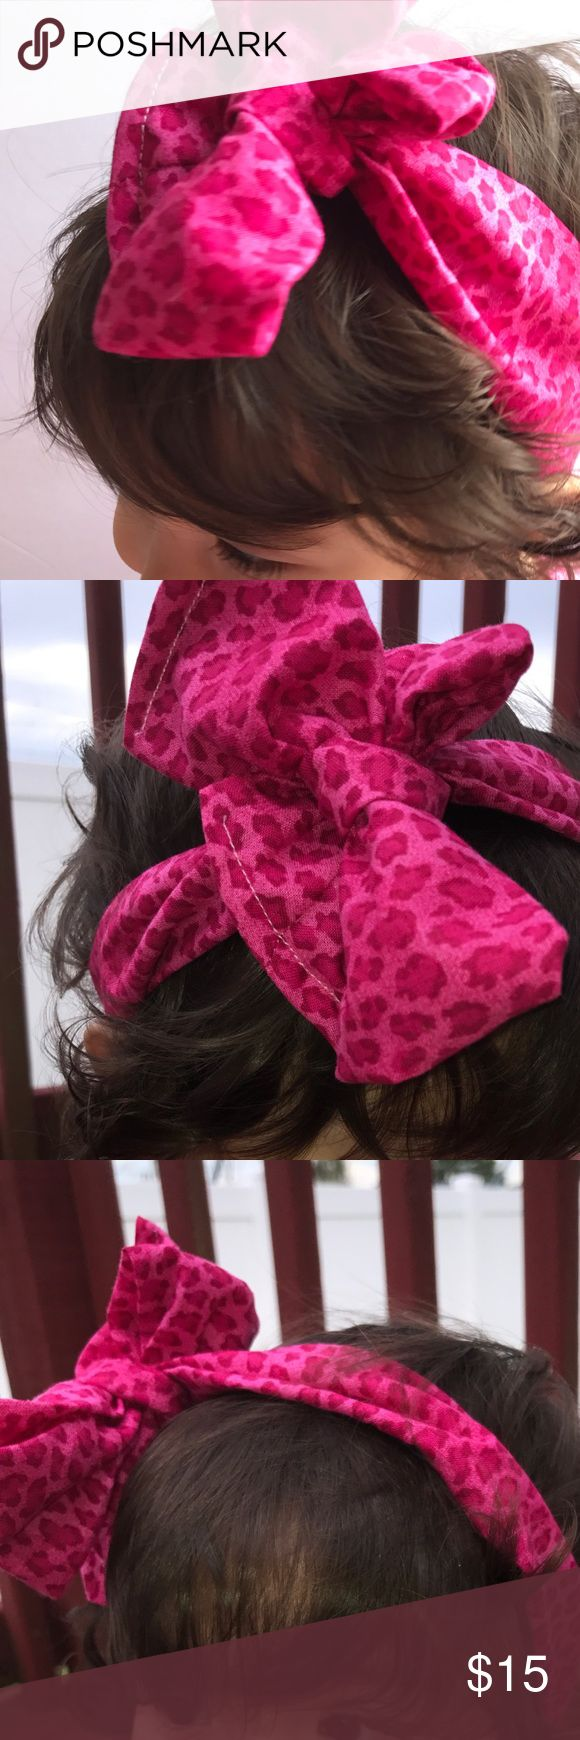 Oversized Leopard Print Pink Baby Turban Headband Handmade by closet owner oversized baby wrap Headband 17 inches tied can fit newborn to 15 months when tied. 100%cotton Accessories Hair Accessories